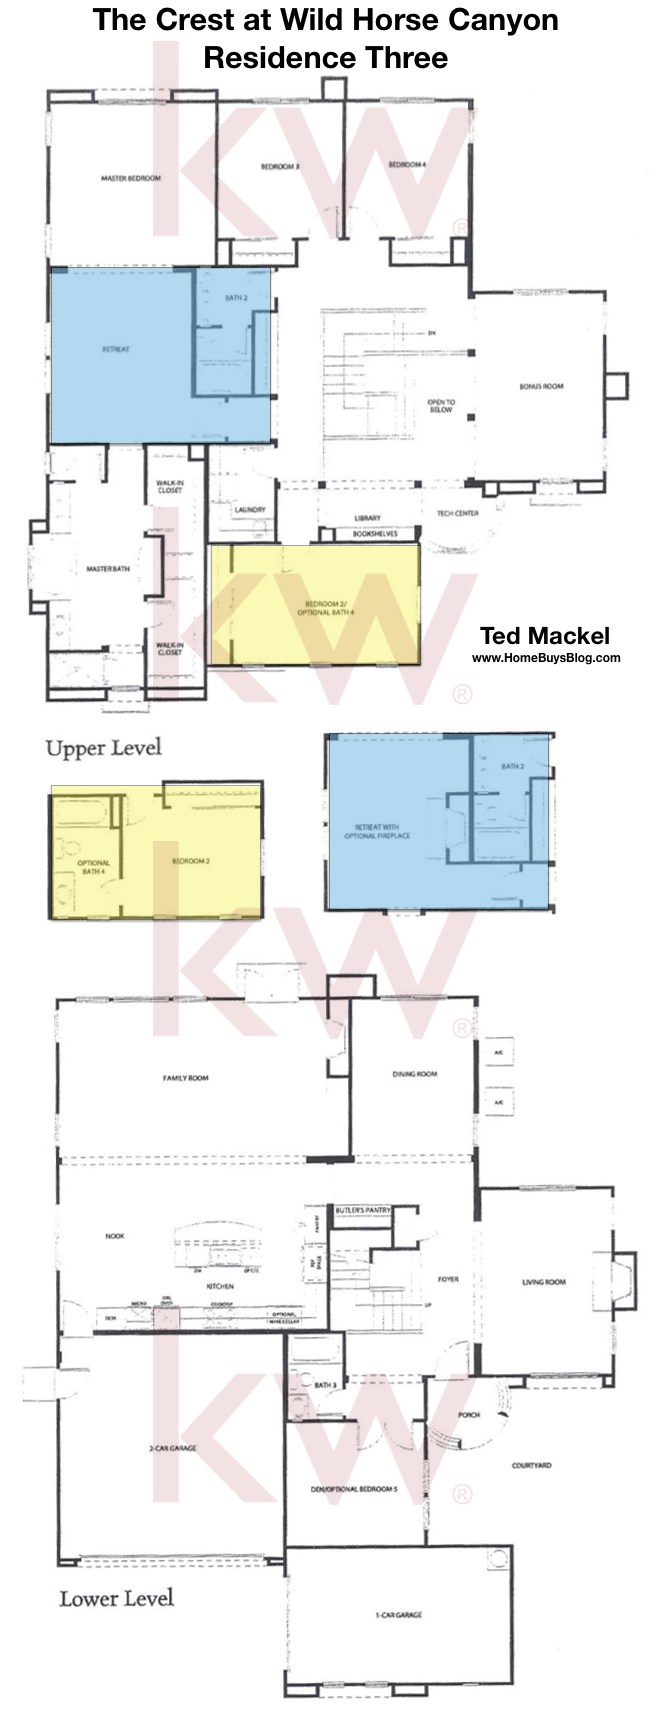 The Crest at Wild Horse Canyon Plan 3 Floor Plan